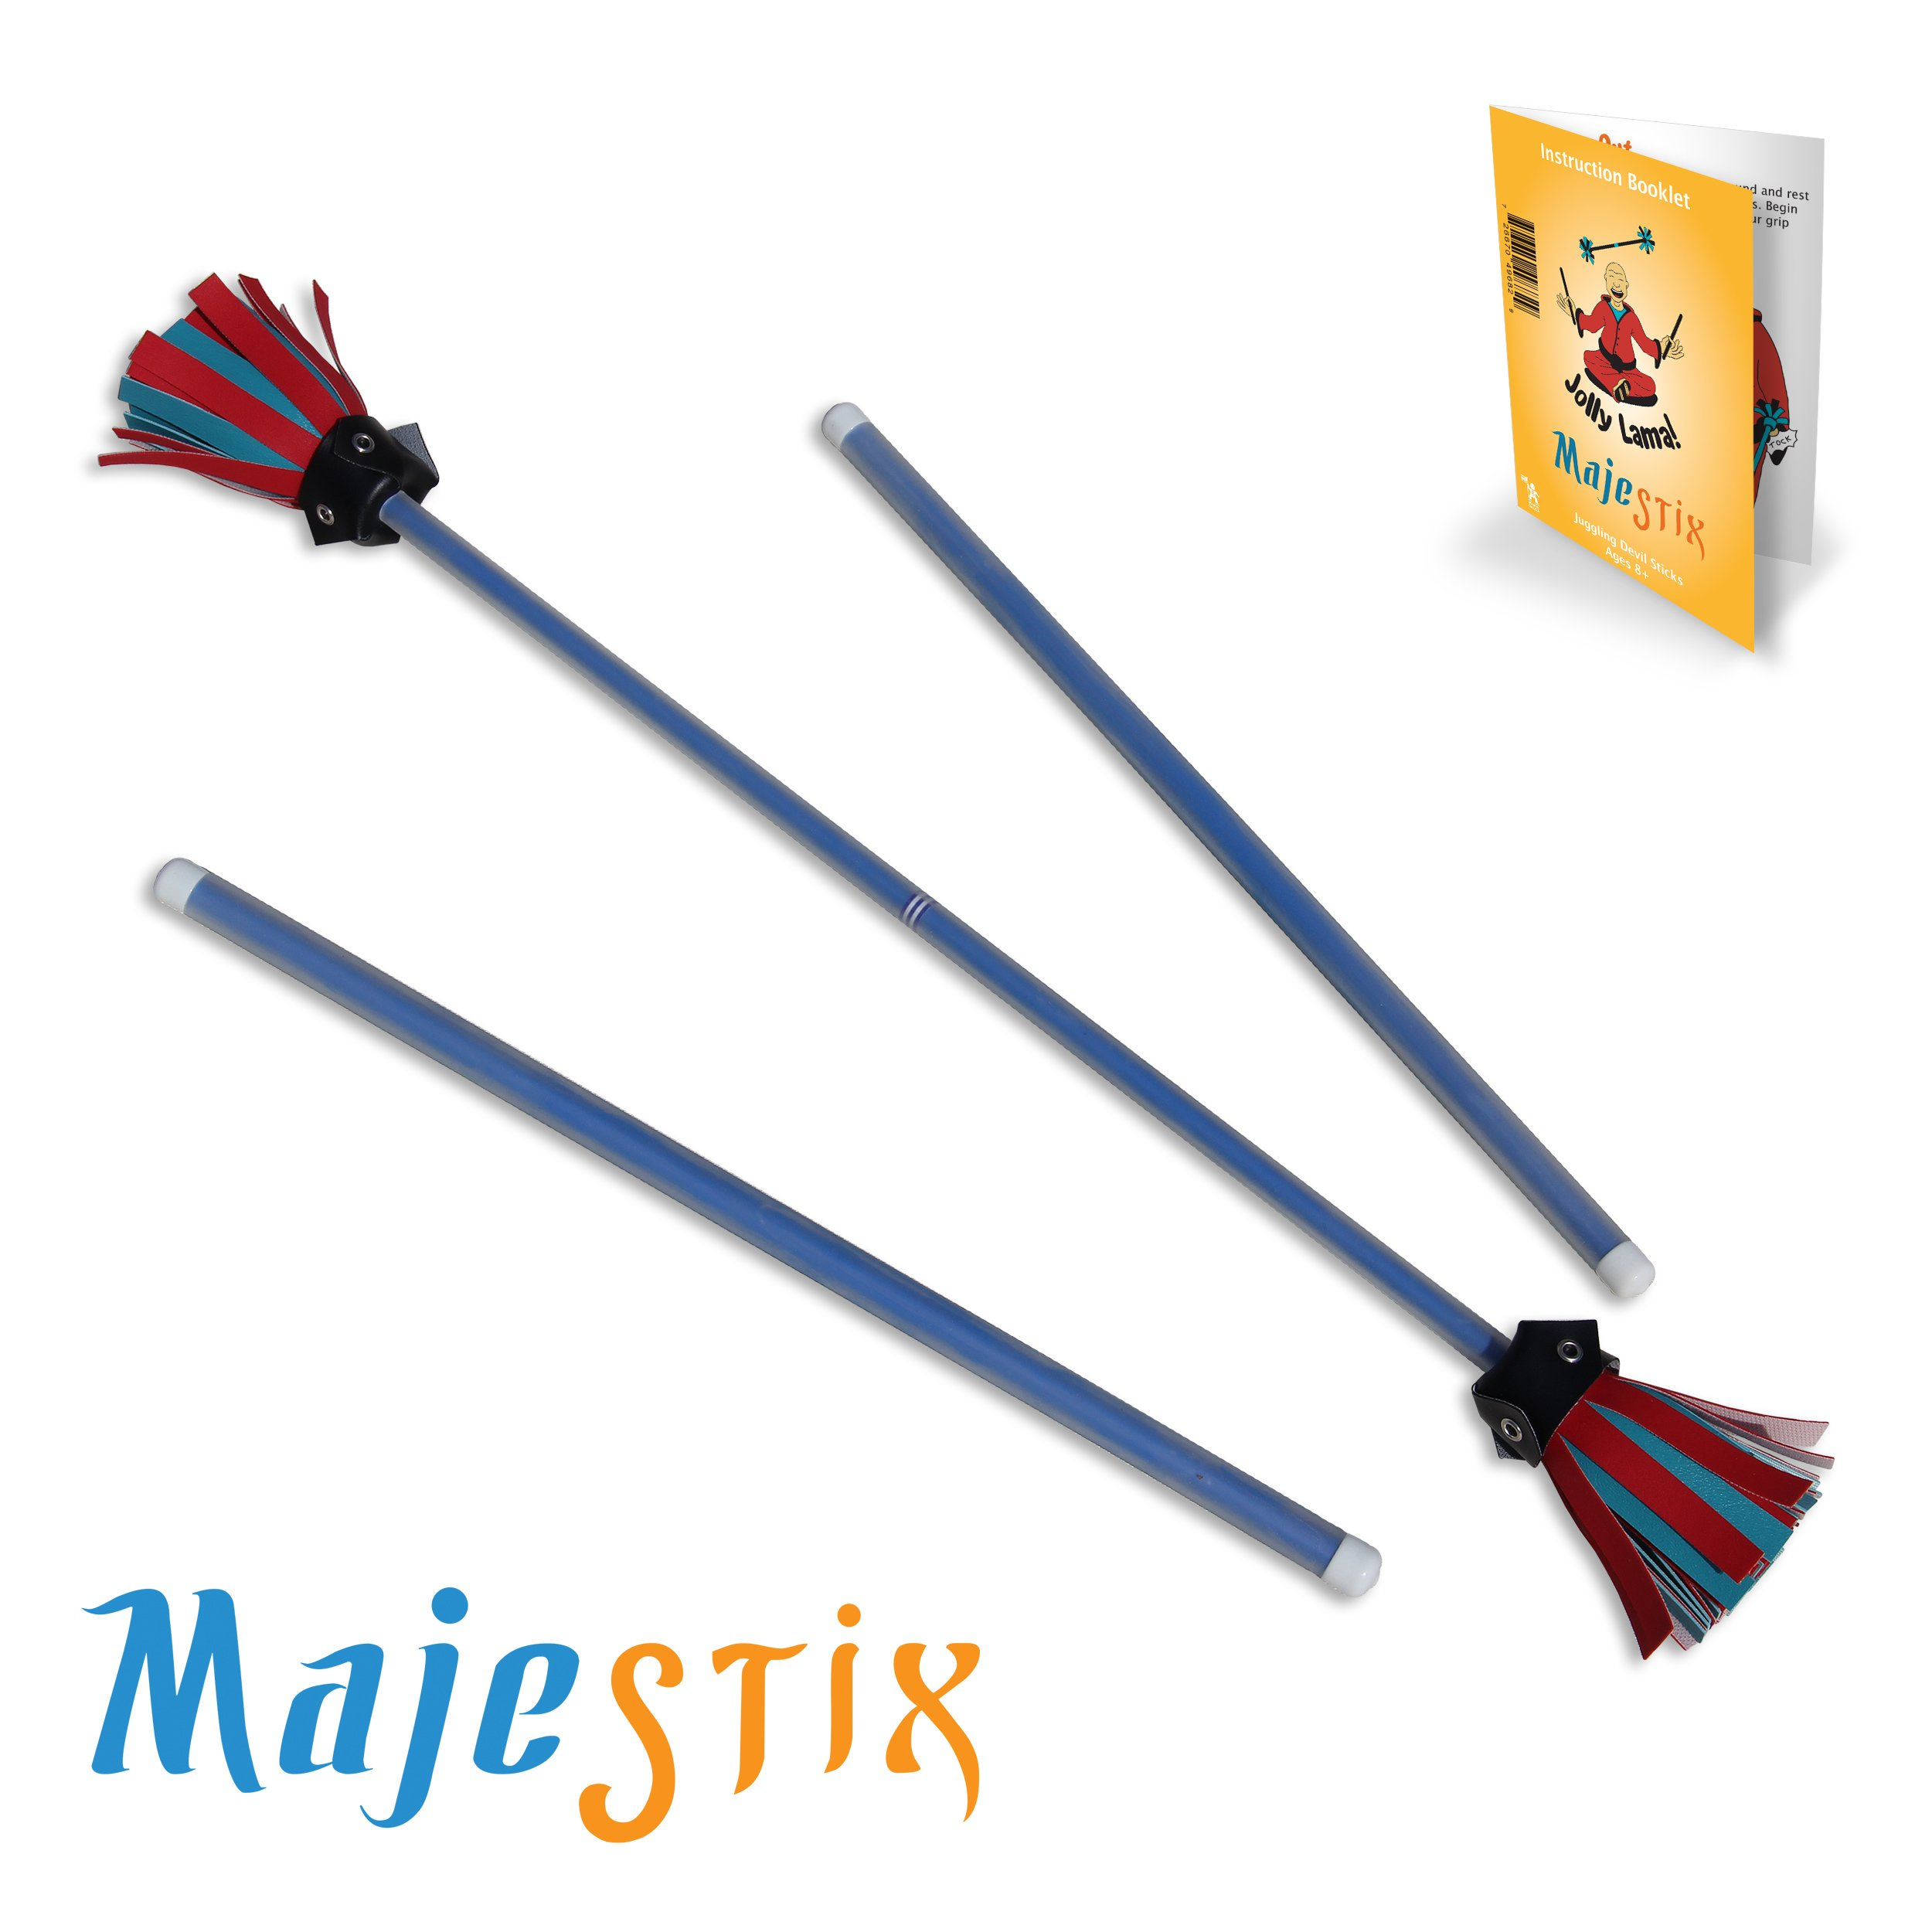 Blue Majestix Juggling Sticks Devil Sticks